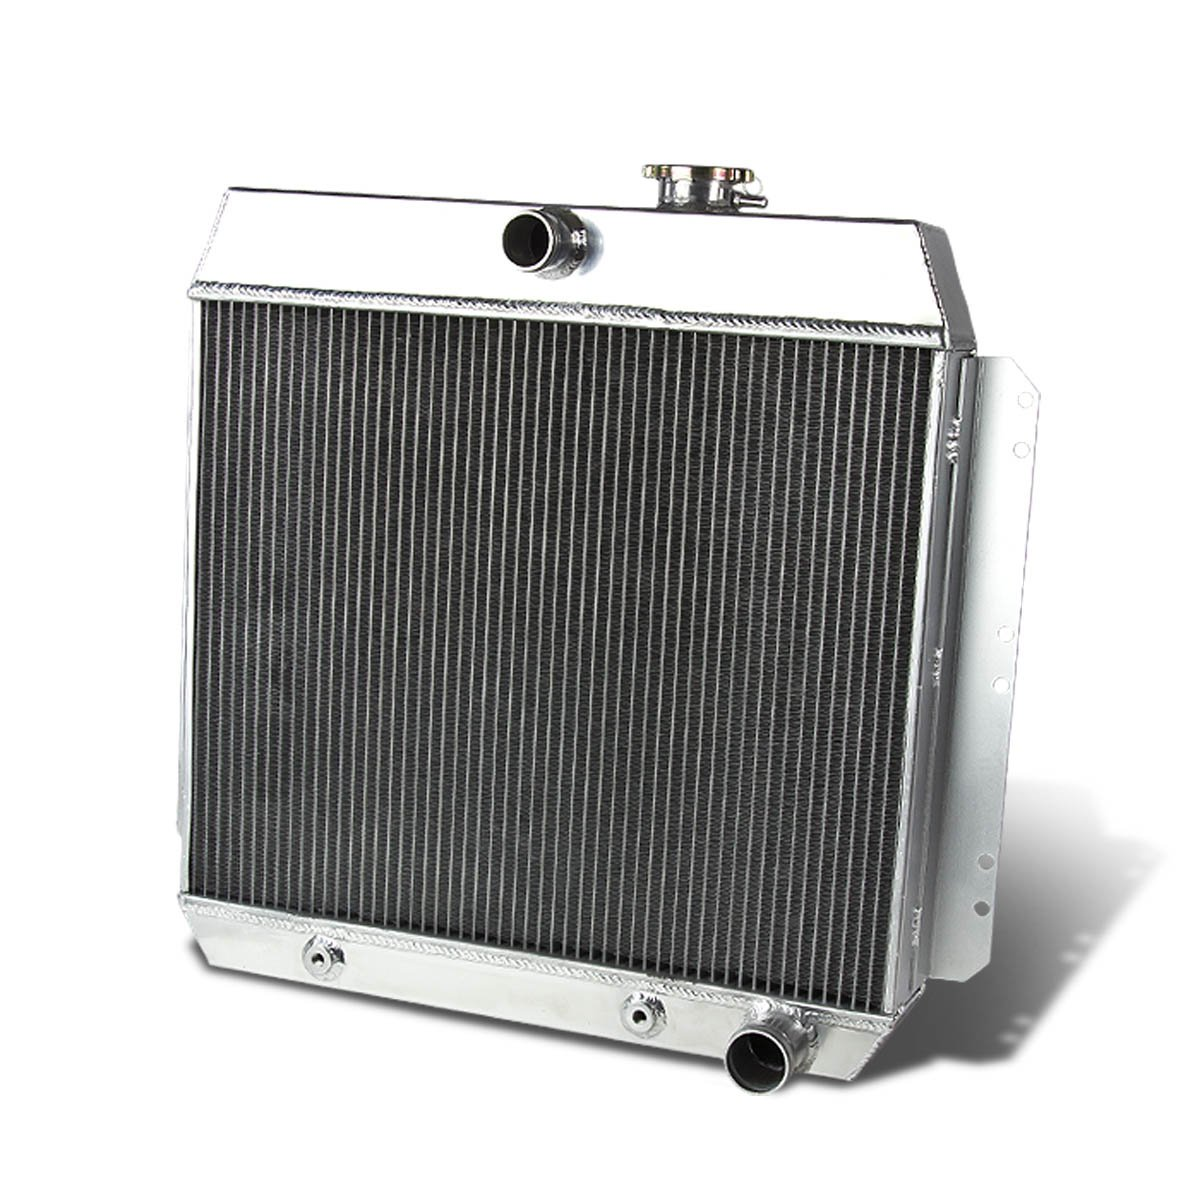 For Chevy V8 Conversion Mt Full Aluminum 3 Row Racing 1949 Truck Engine Swap Radiator Automotive